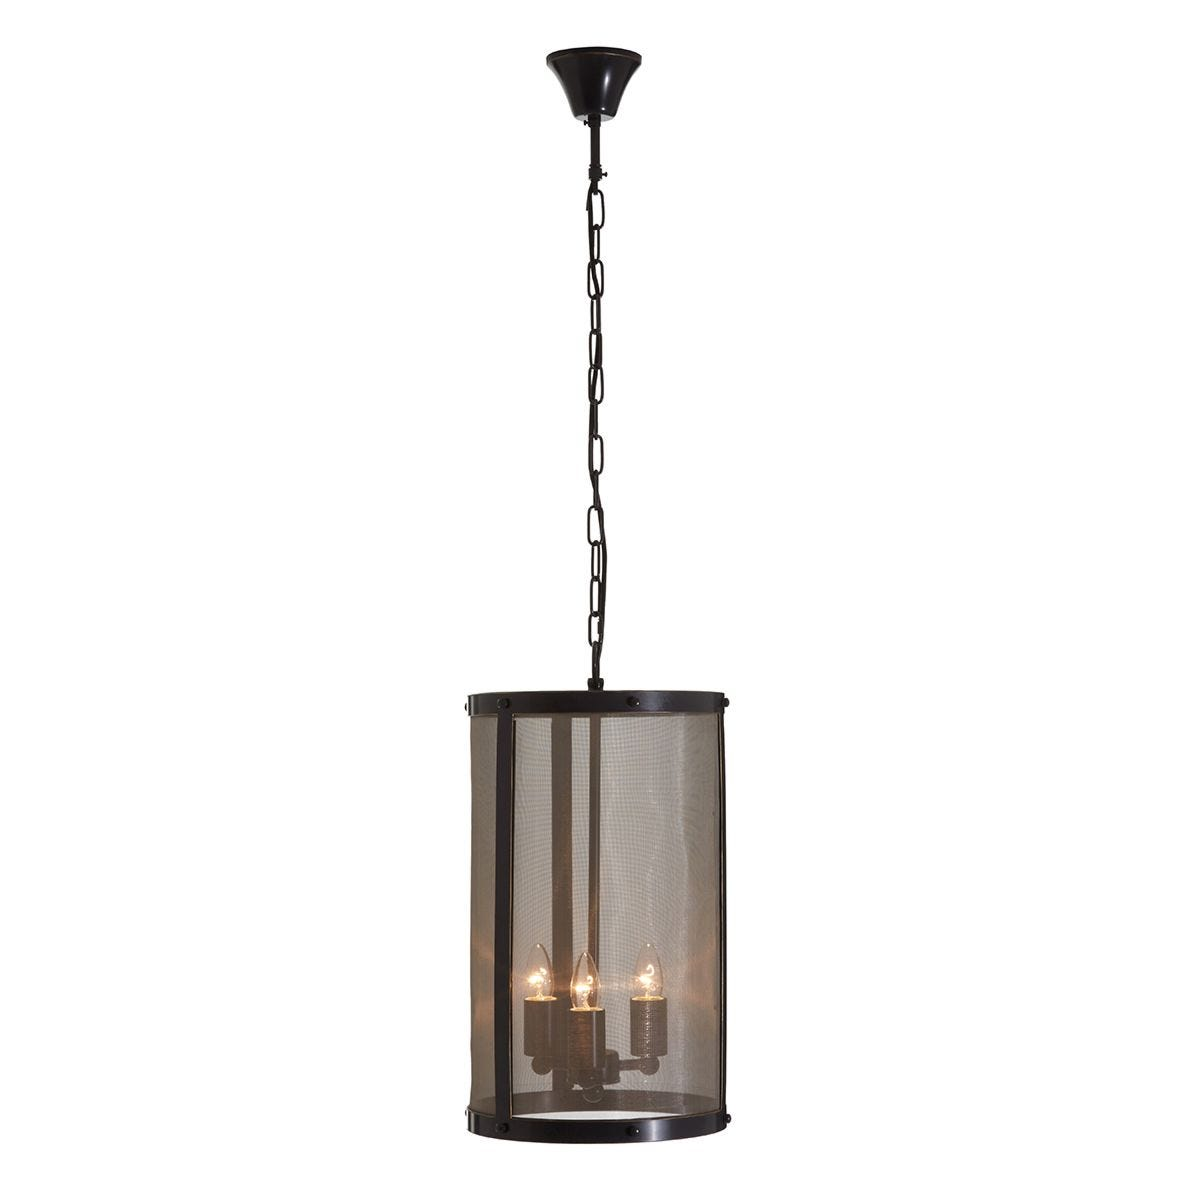 Premier Housewares Hampstead Small Pendant Light in Iron with Gauze - Antique Black/Gold Finish